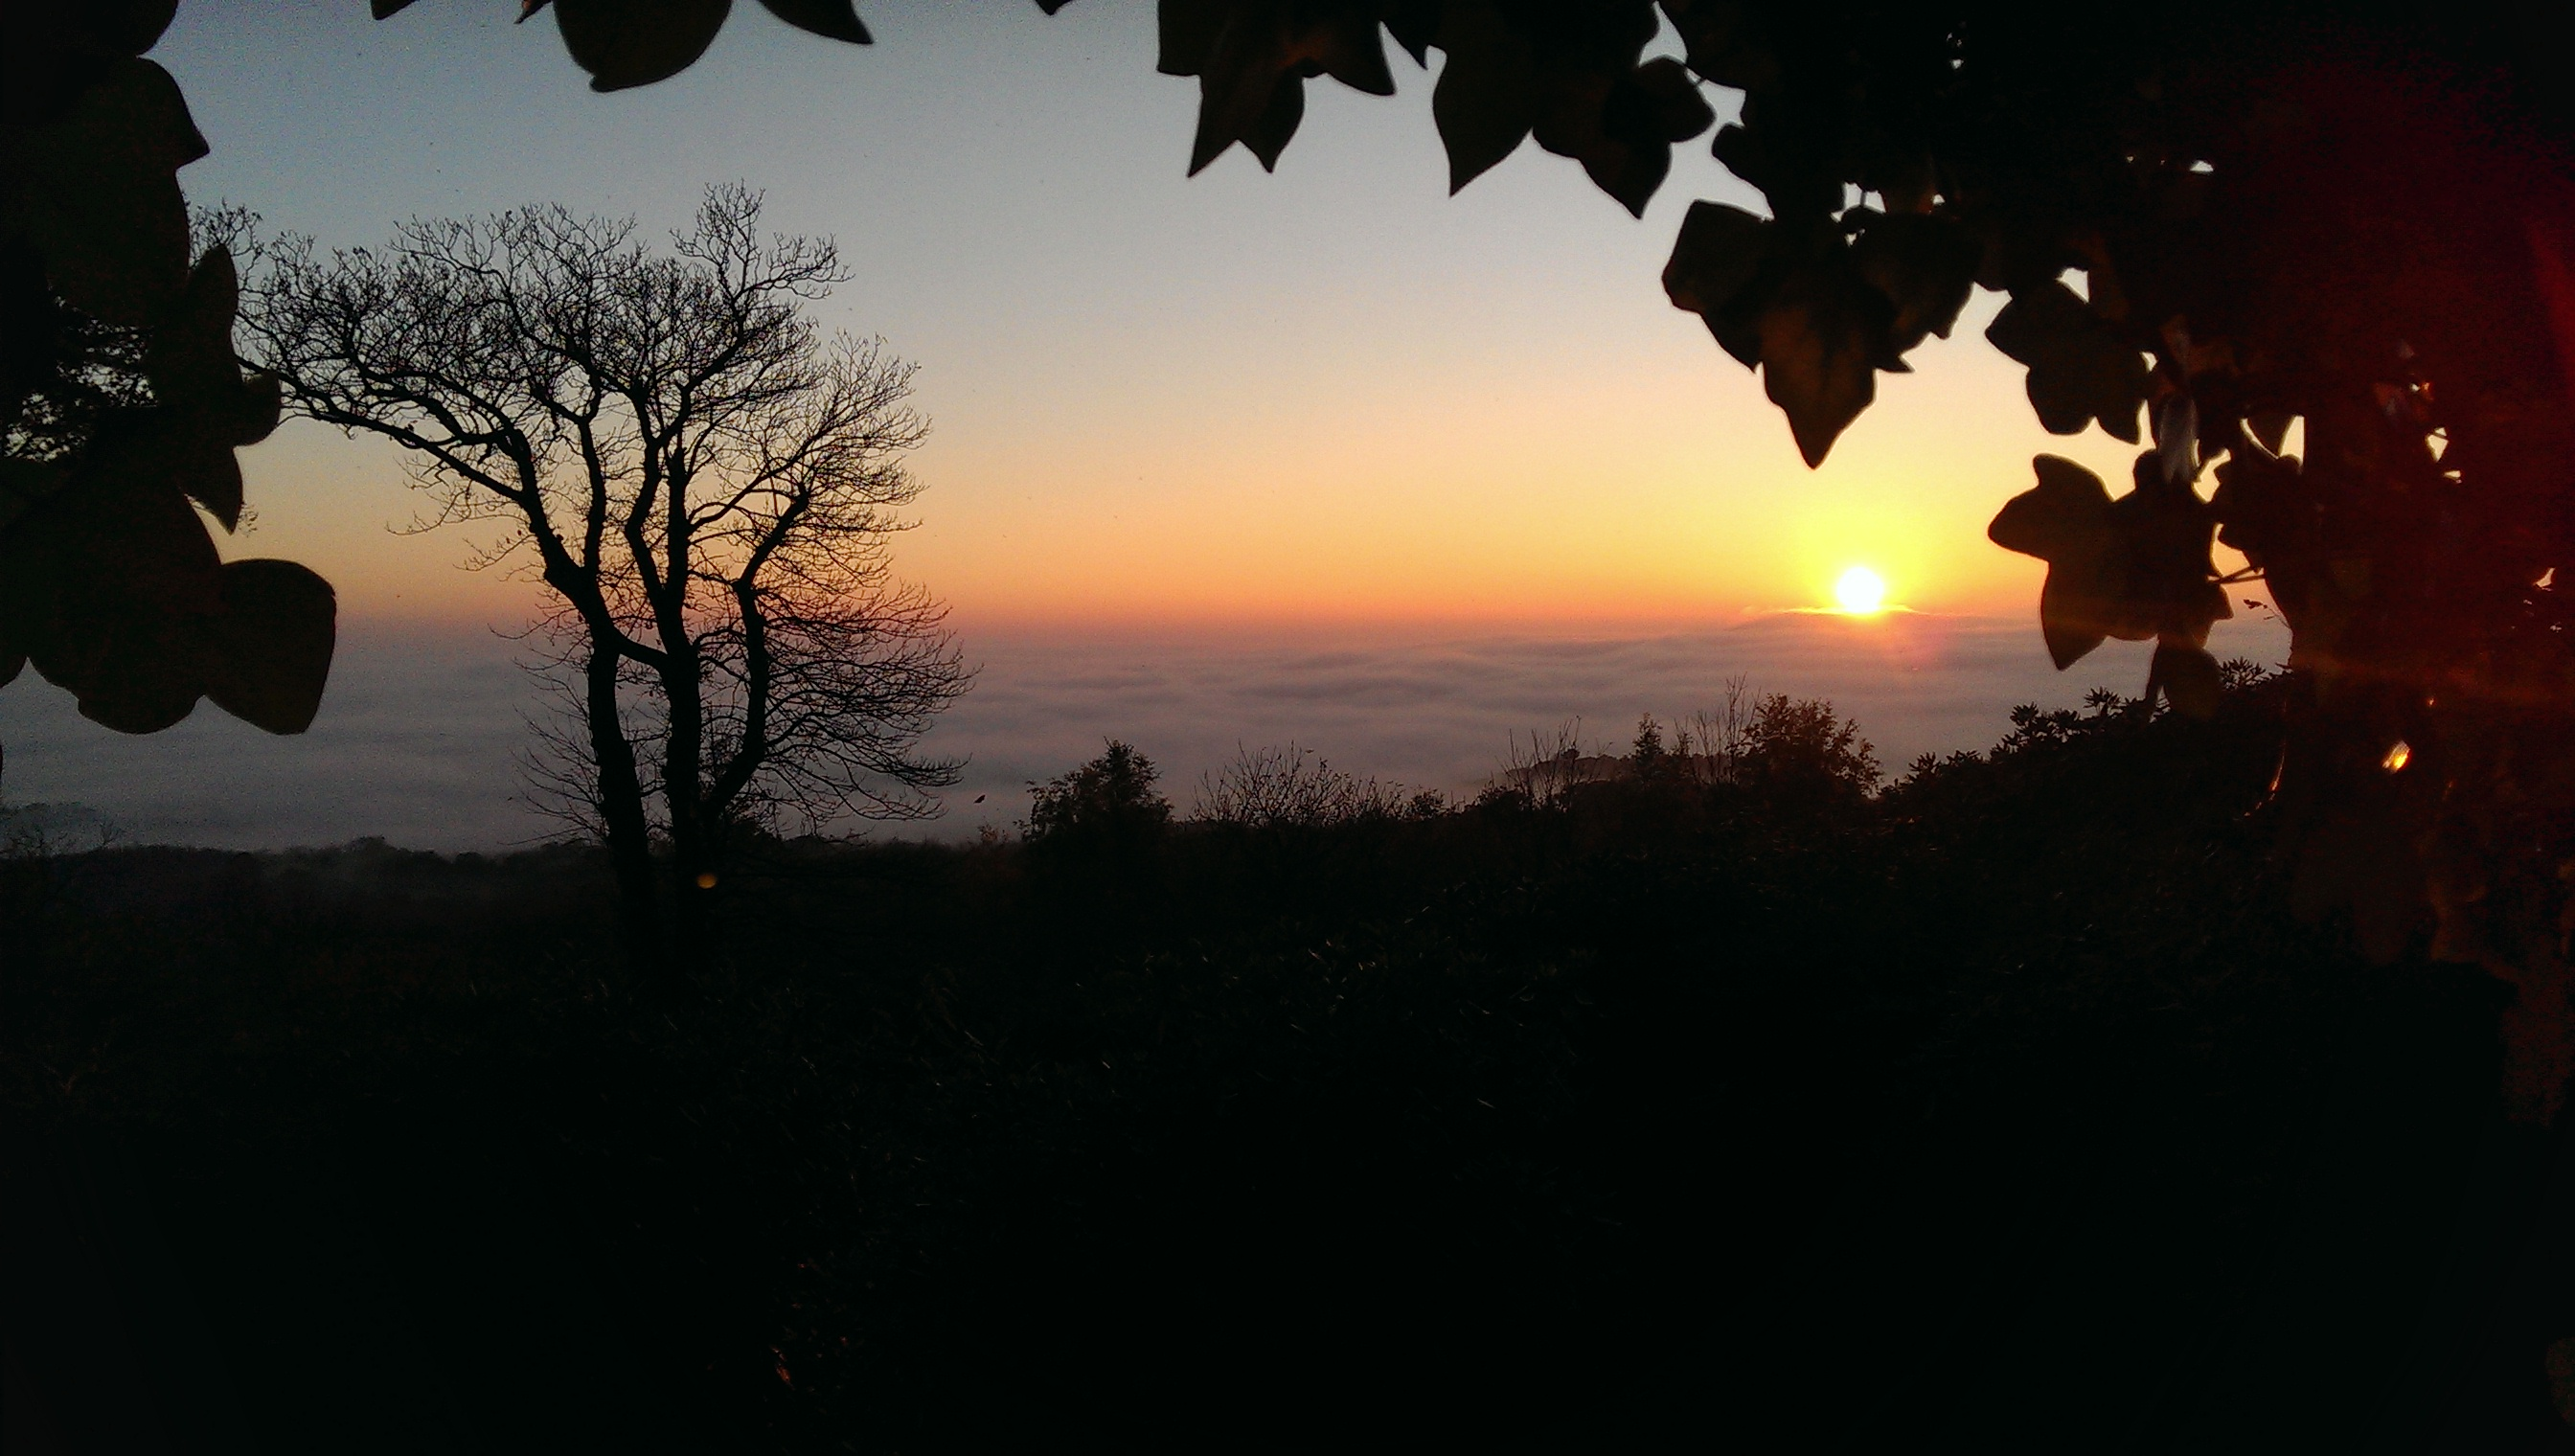 Sunset over foggy Cranleigh and Dunsfold